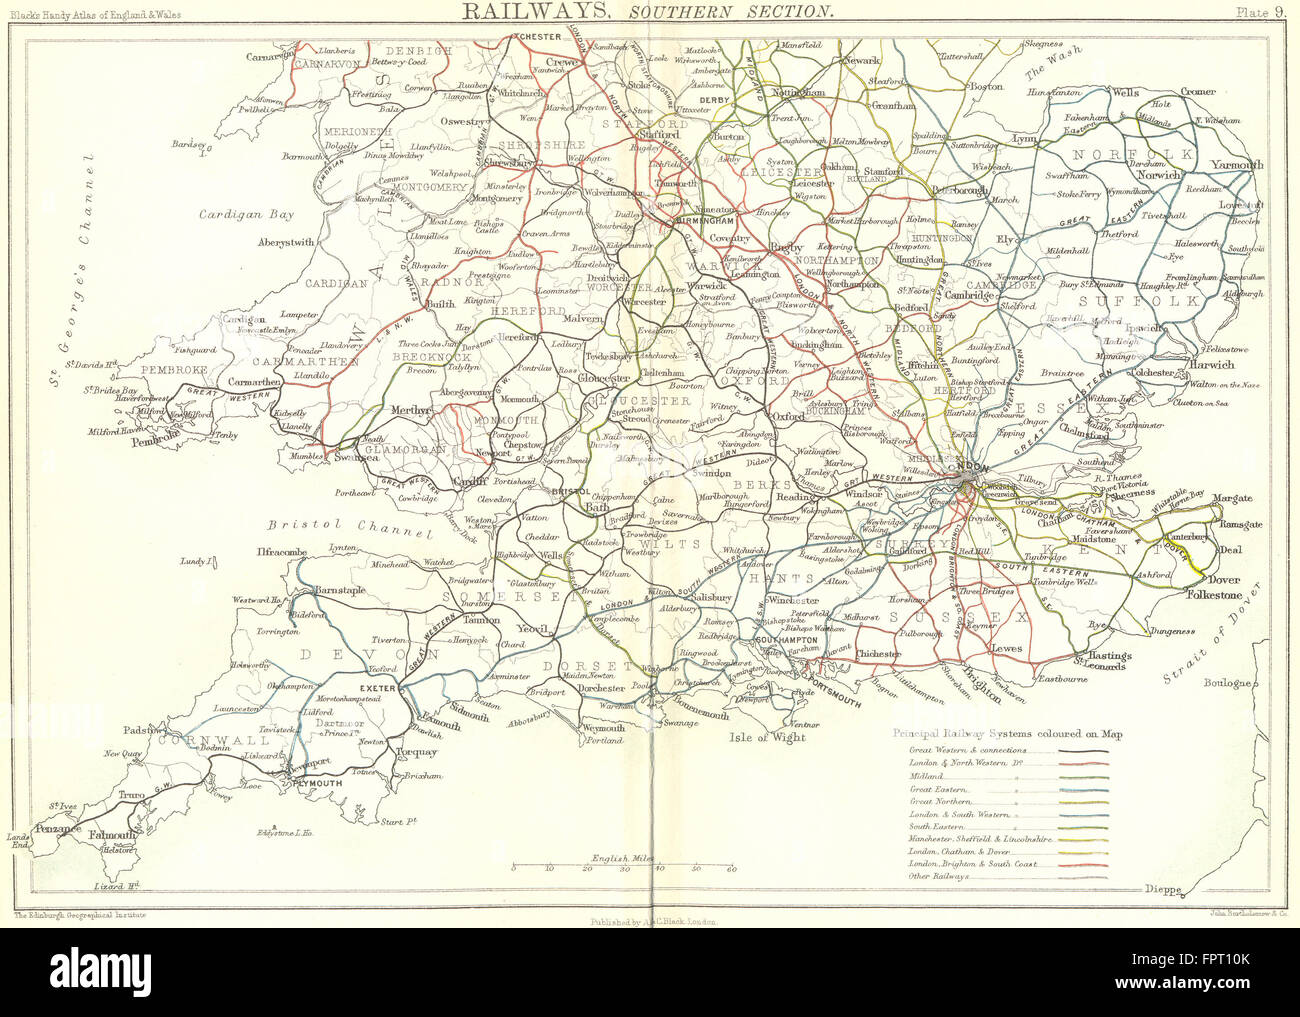 Map Of South England.Uk Railways South England Wales Black 1892 Antique Map